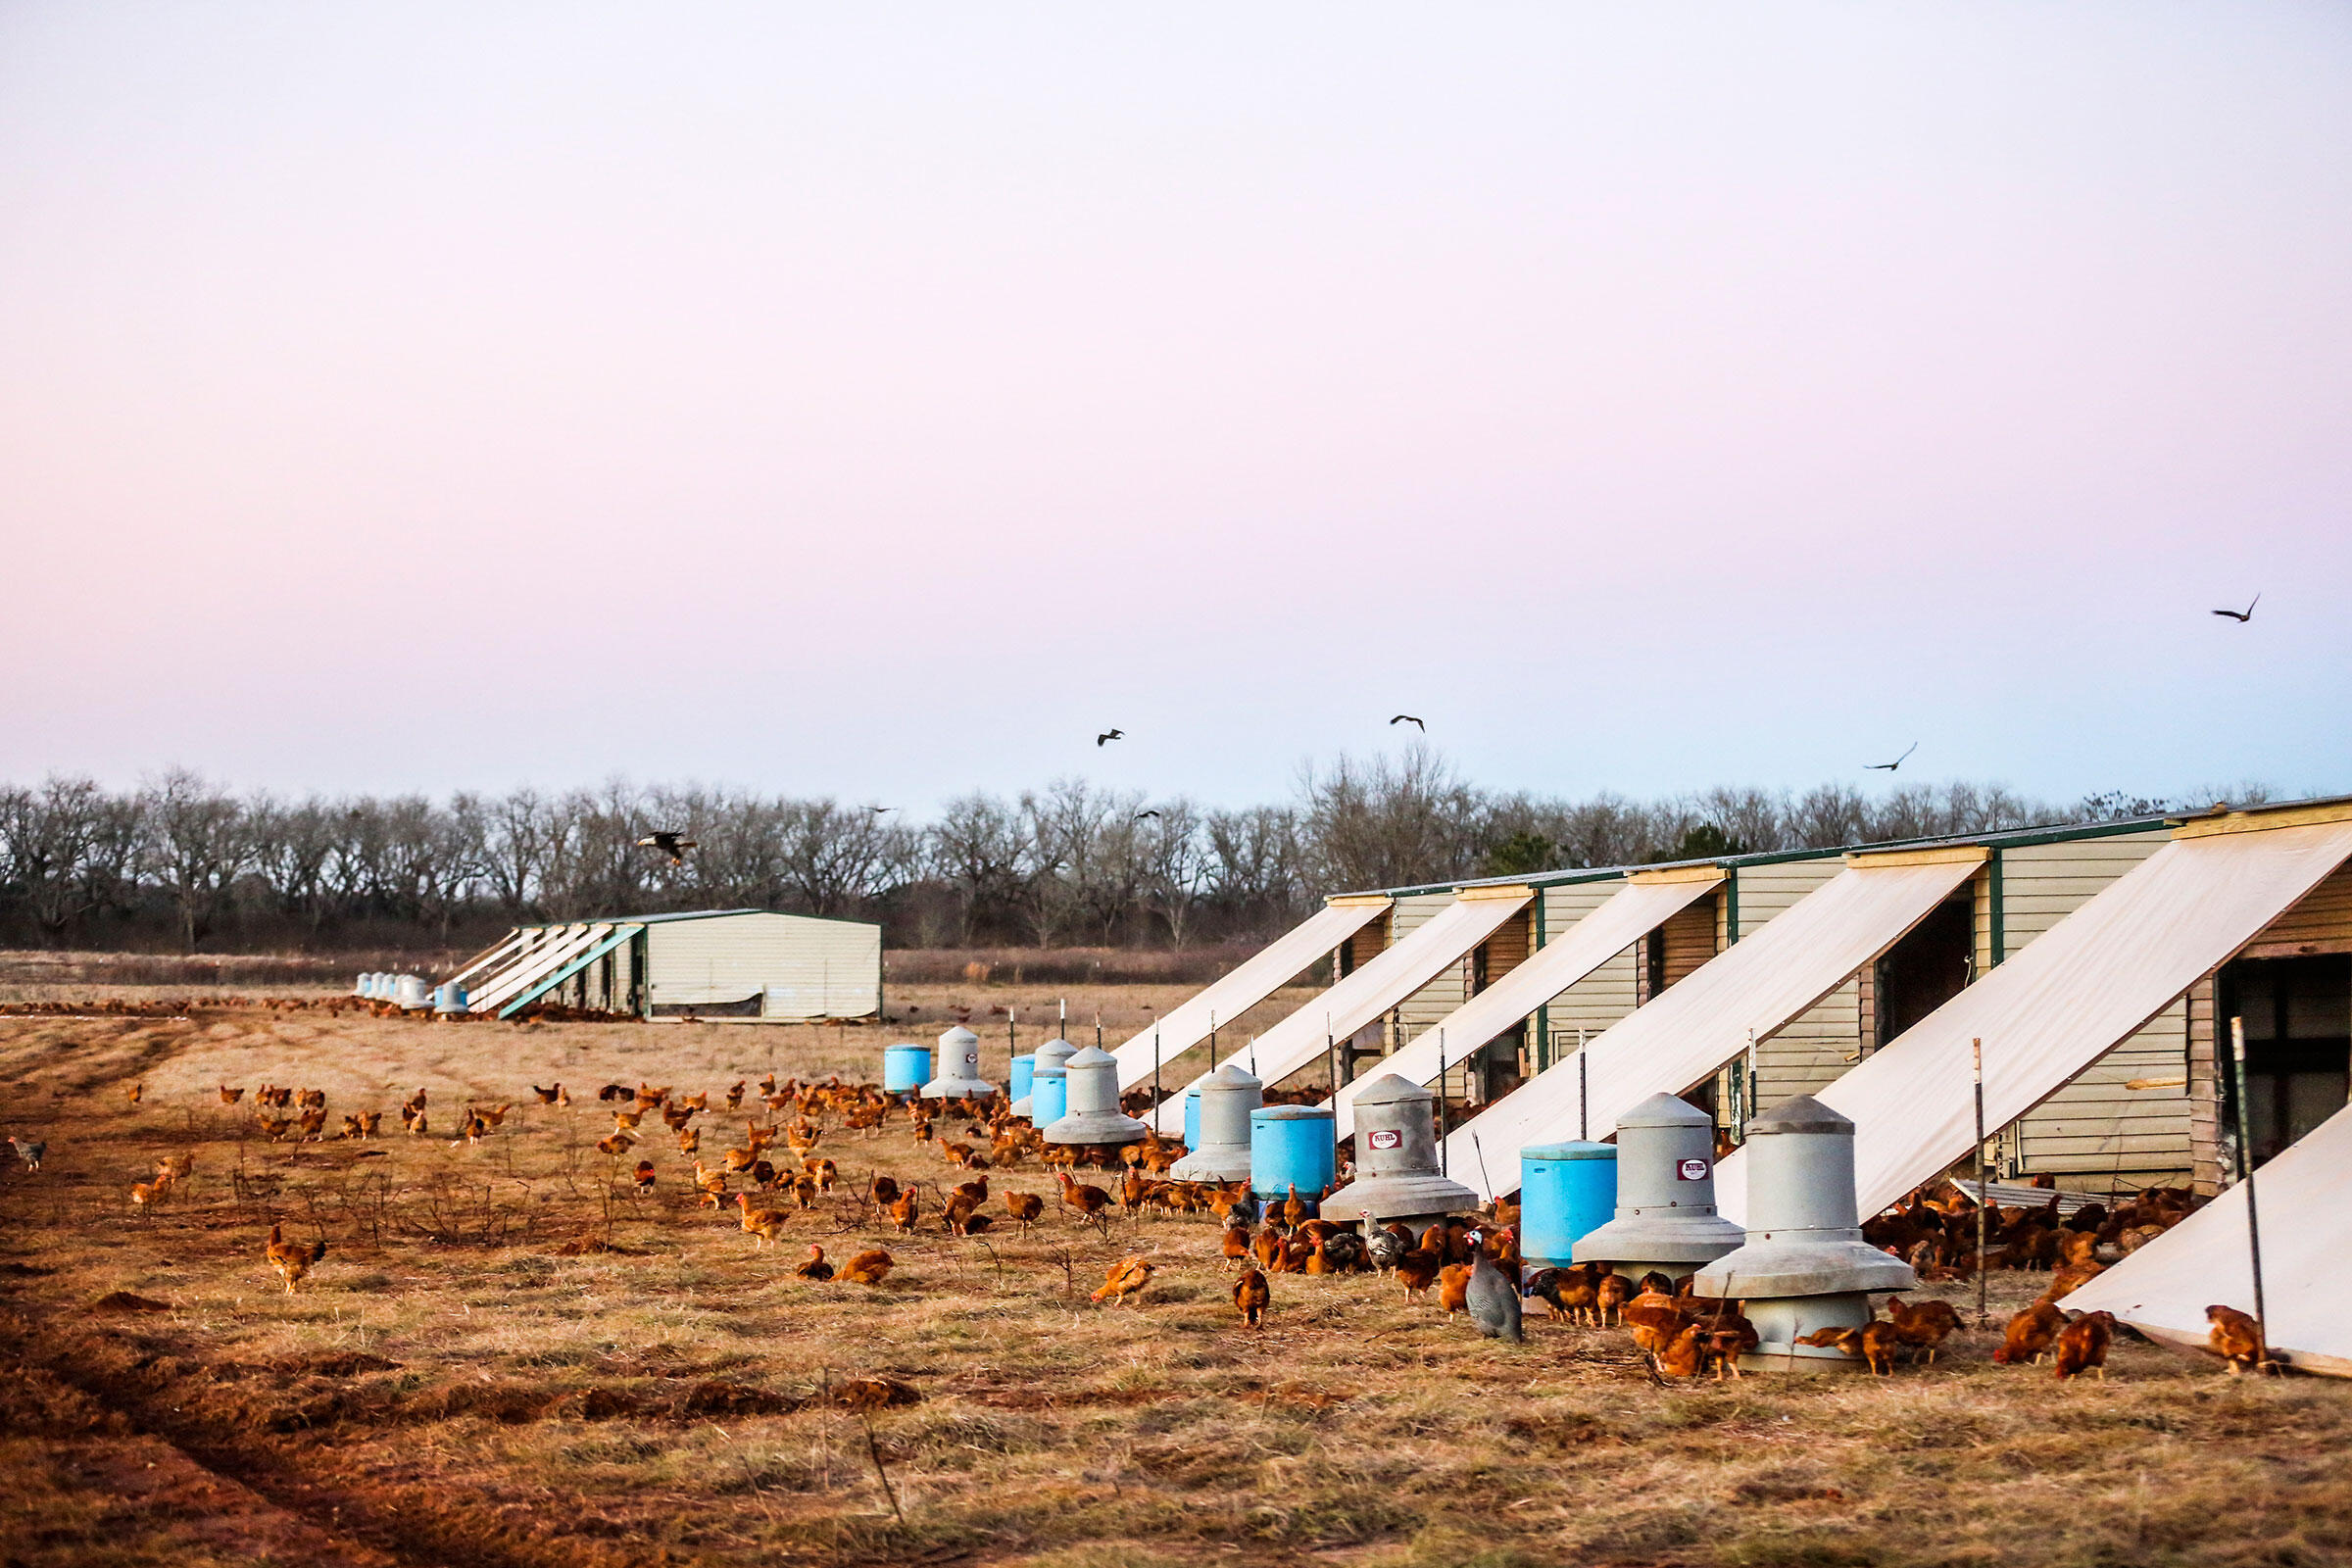 Bald Eagles Eating Chickens at White Oak Farms — Raptor